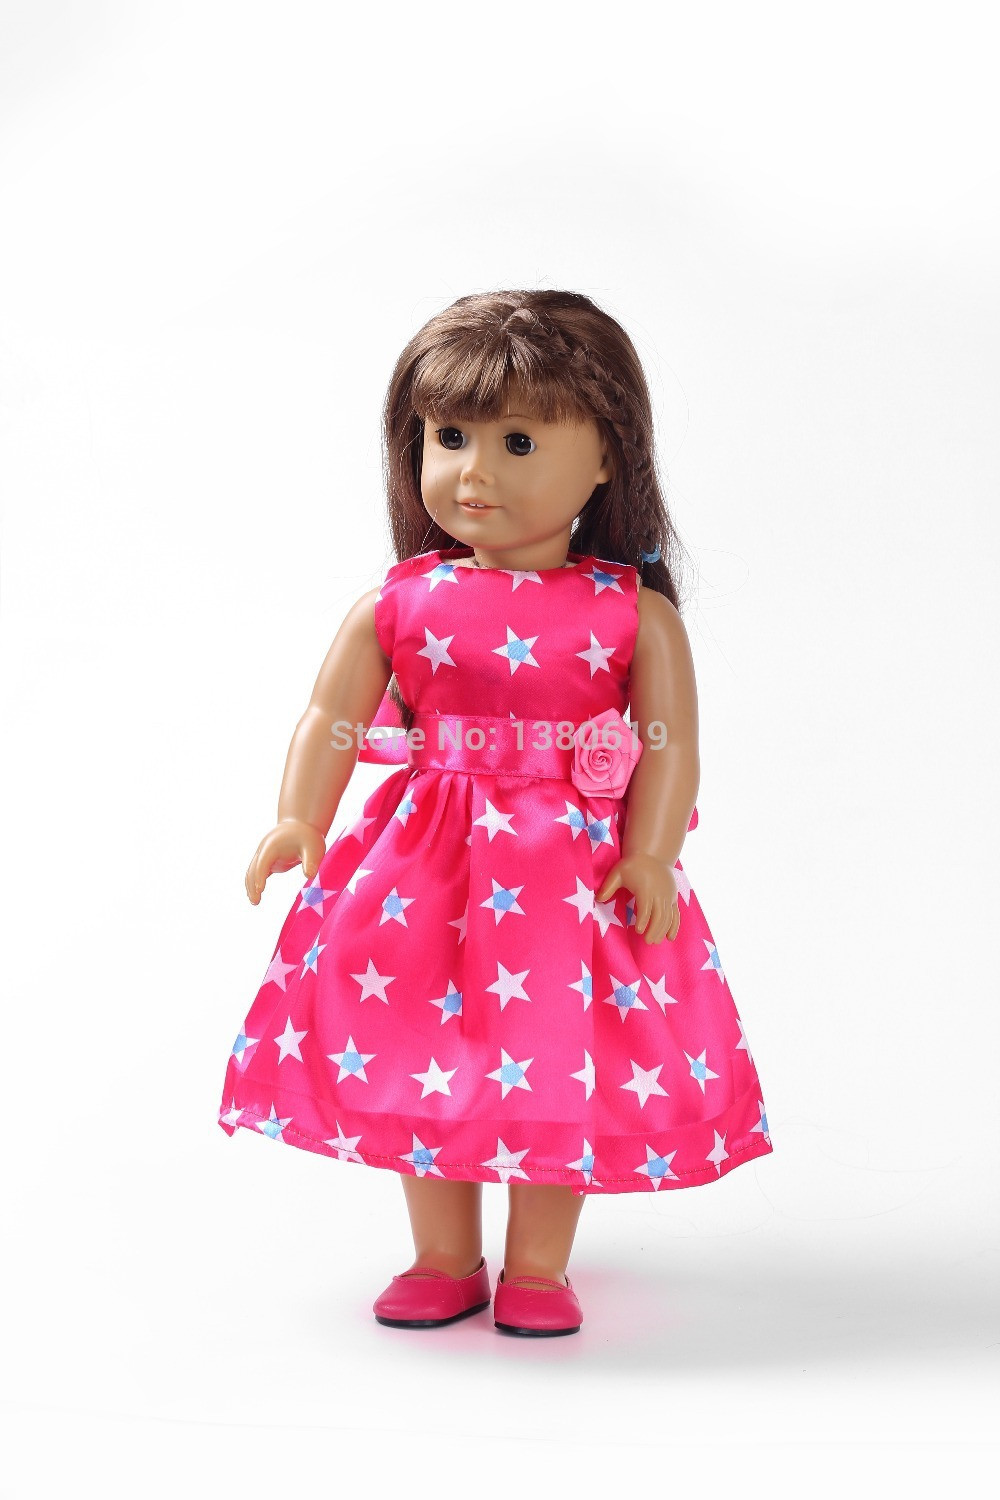 Best Of Free Shipping Hot 2014 Christmas Tnew Style Popular American Girl Christmas Dress Of Lovely 47 Models American Girl Christmas Dress